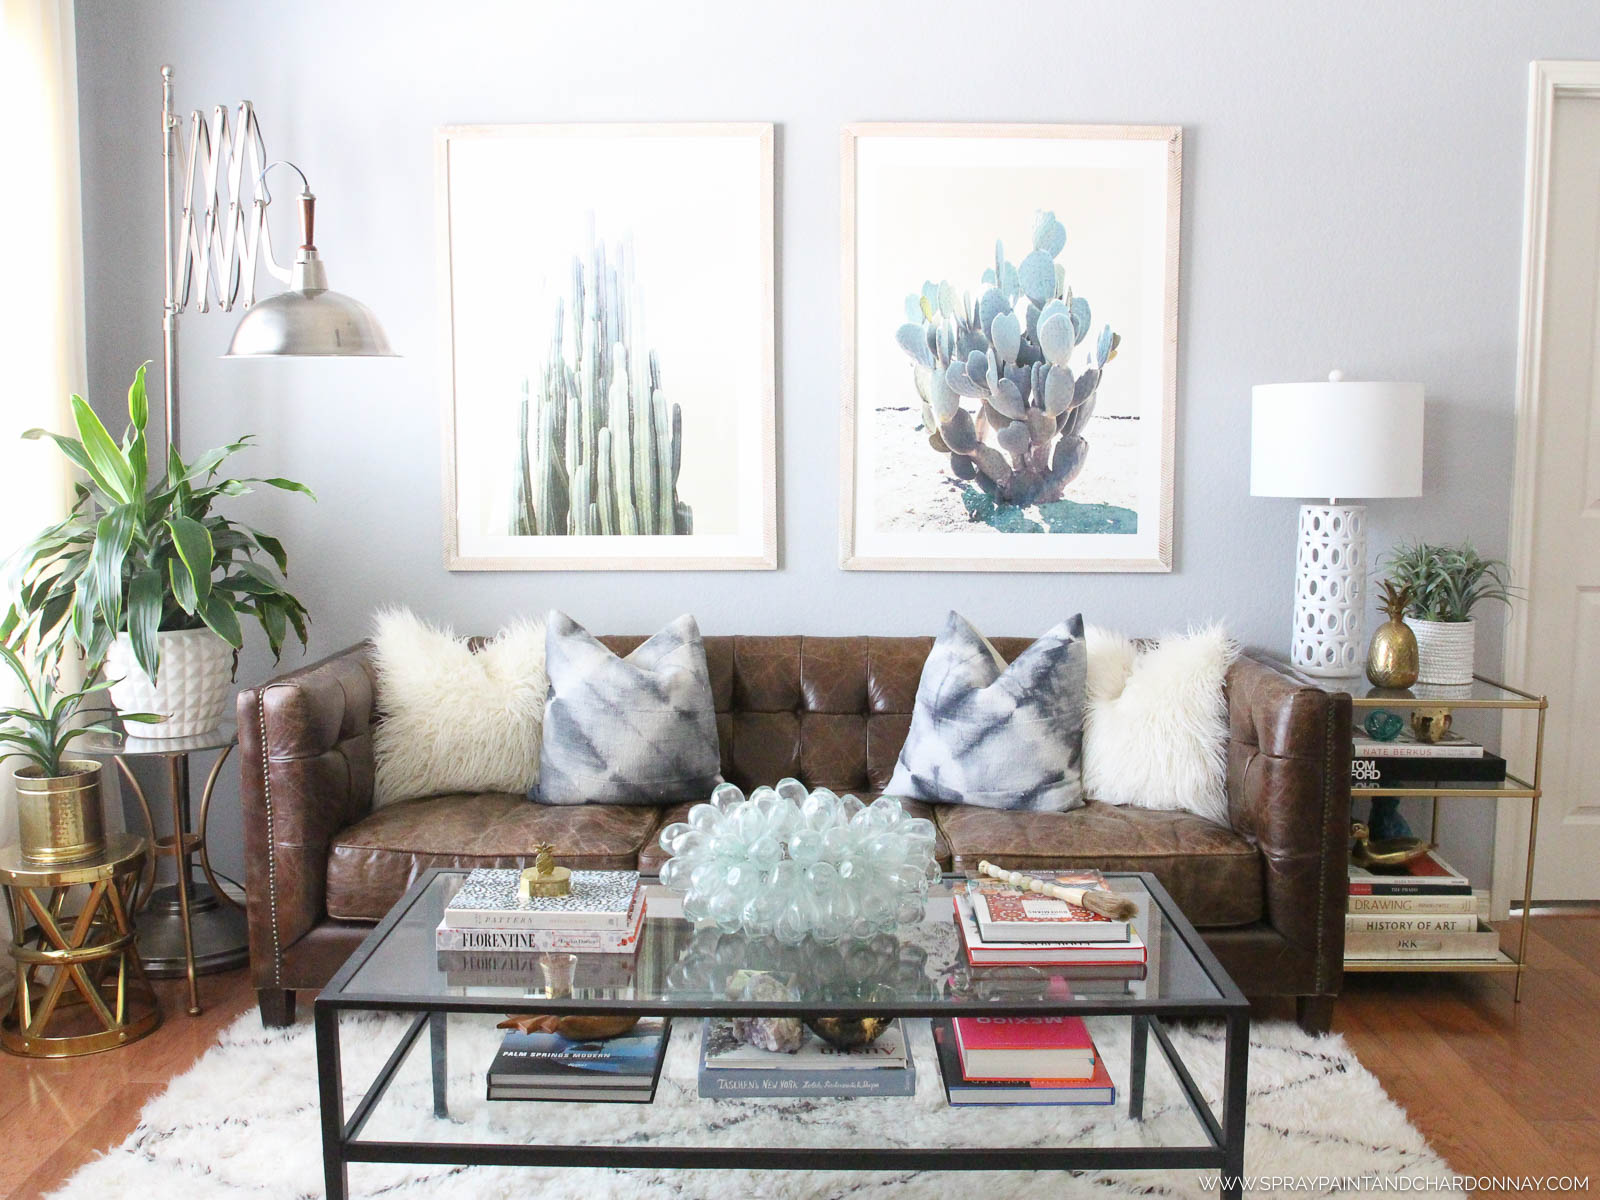 Living Room Transformation with Minted | Spray Paint & Chardonnay